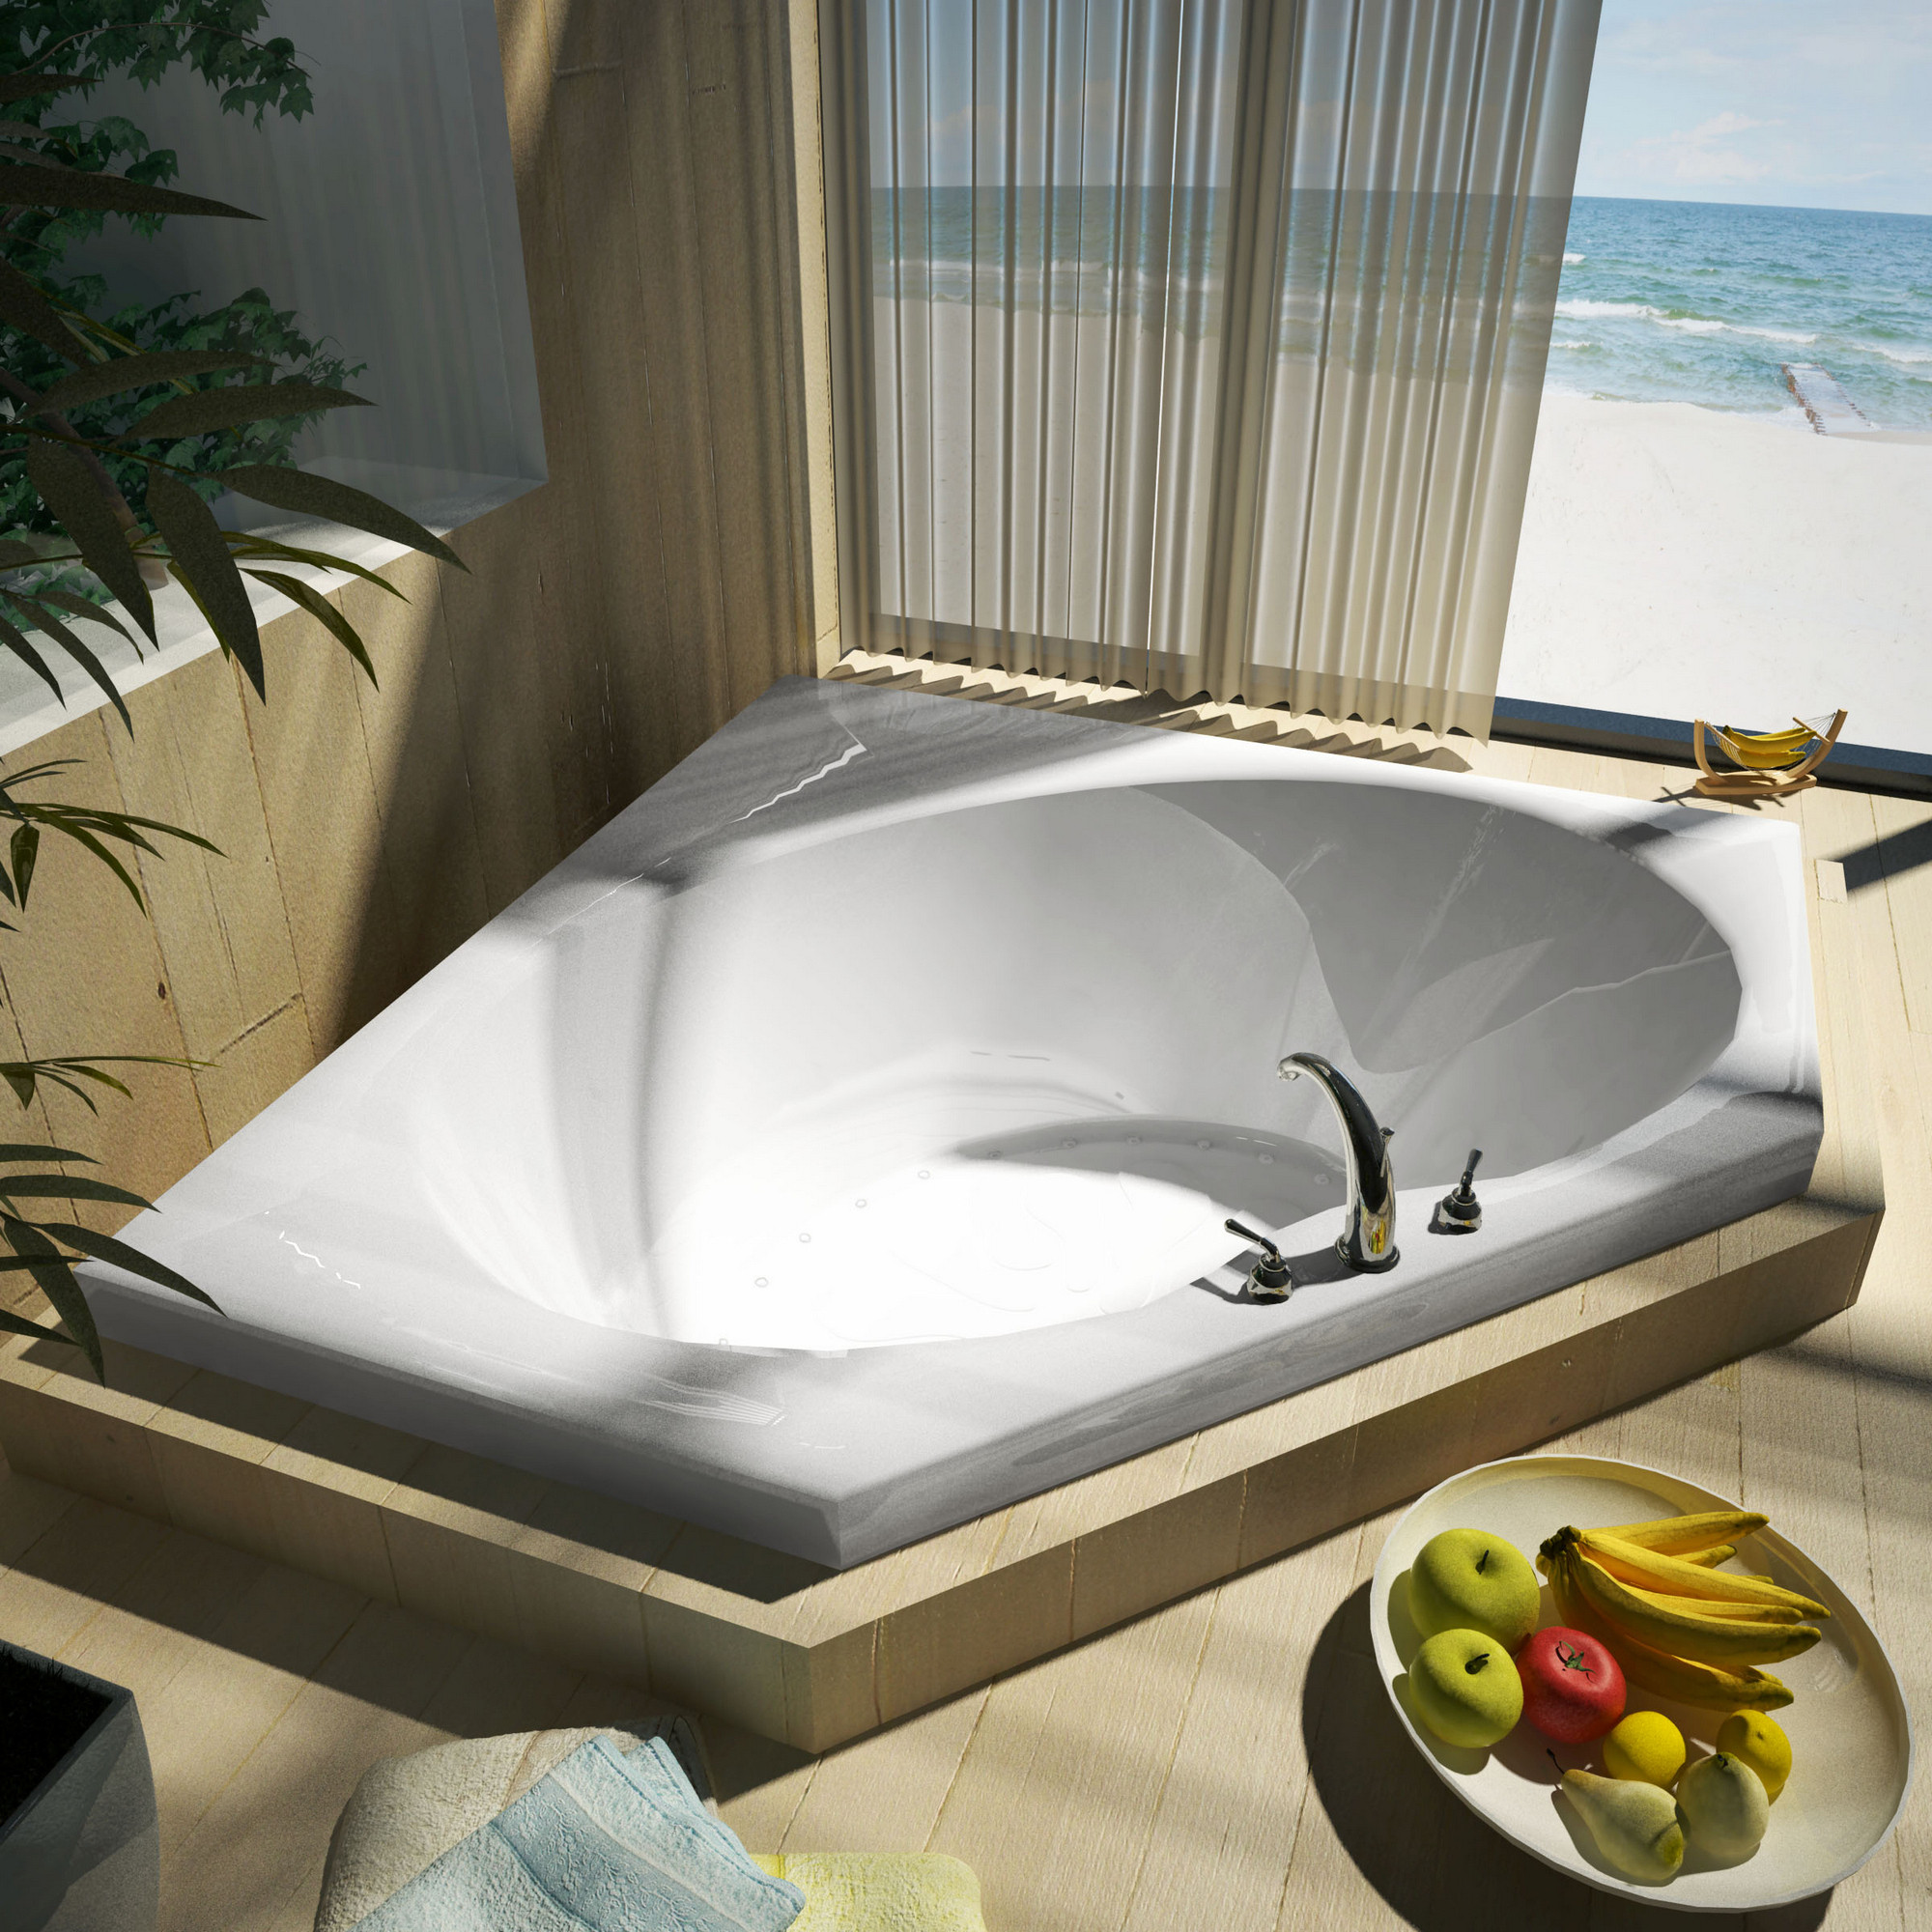 MediTub 6060EAL Atlantis Eclipse Air Jetted Bathtub With Left Blower